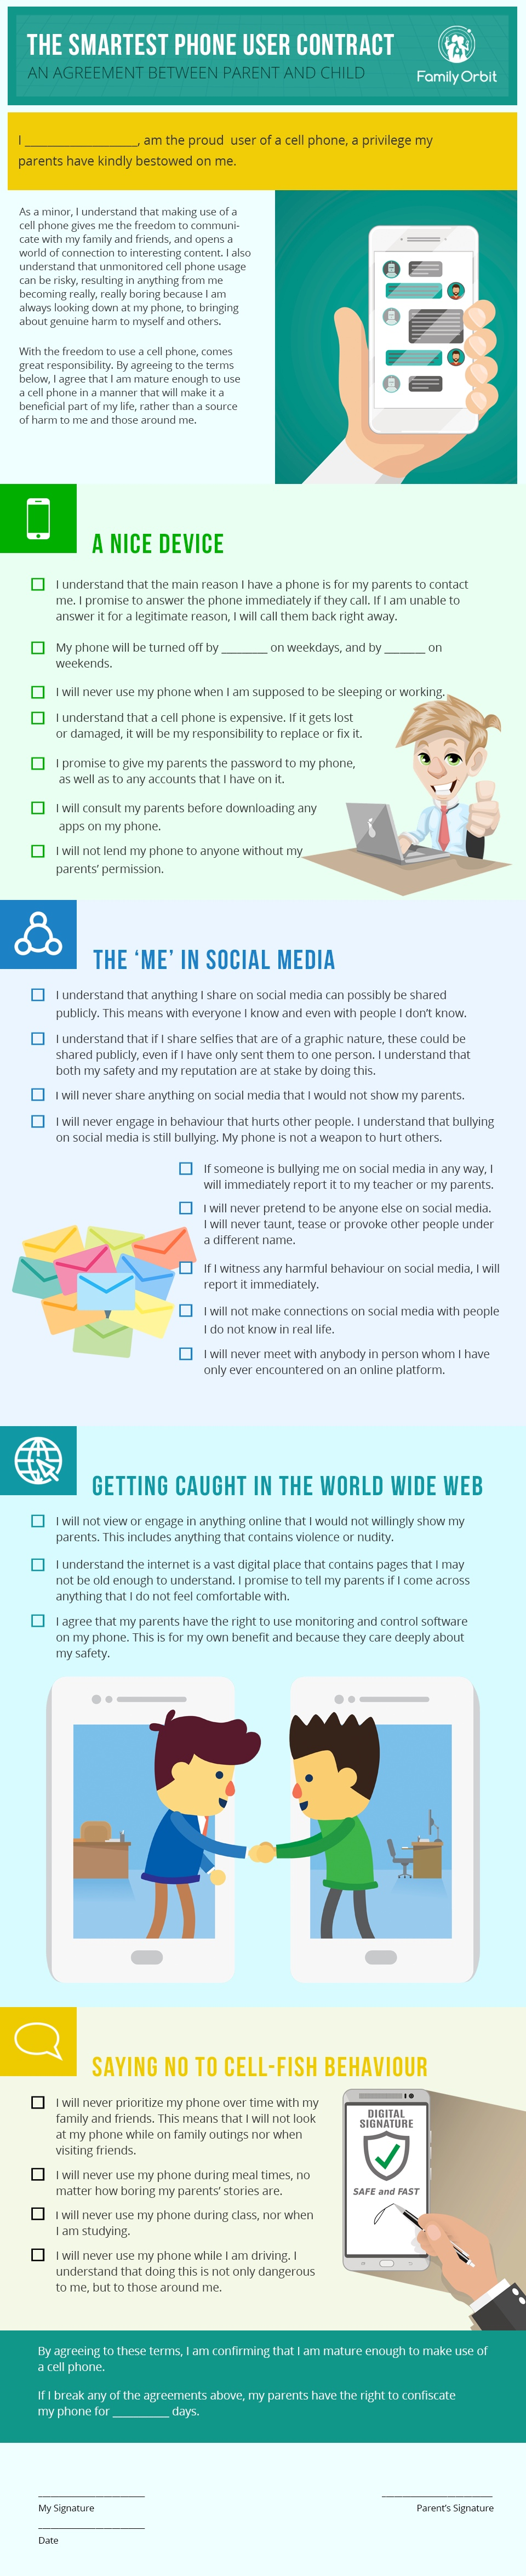 Cell Phone Contract for Tweens and Teens: Print or Download - An Infographic from Family Orbit Blog